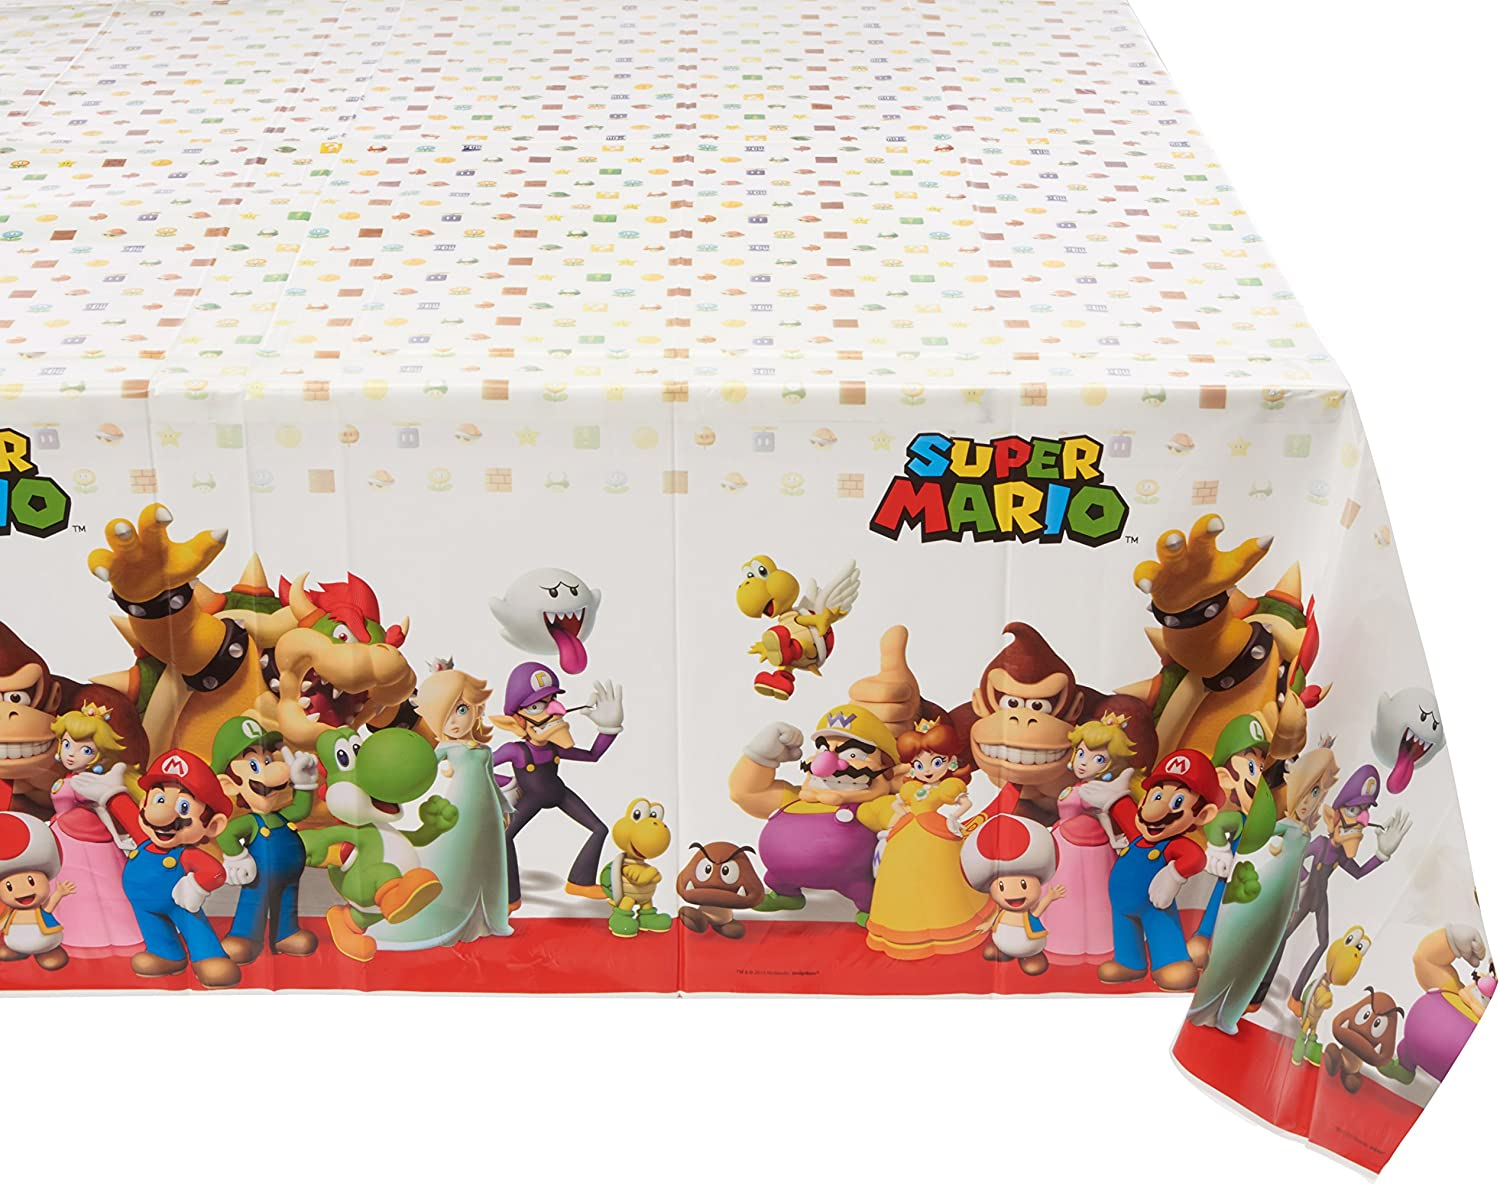 B0119EYRQ8 Super Mario Brothers Plastic Table Cover, Party Favor 91YNUScZDEL